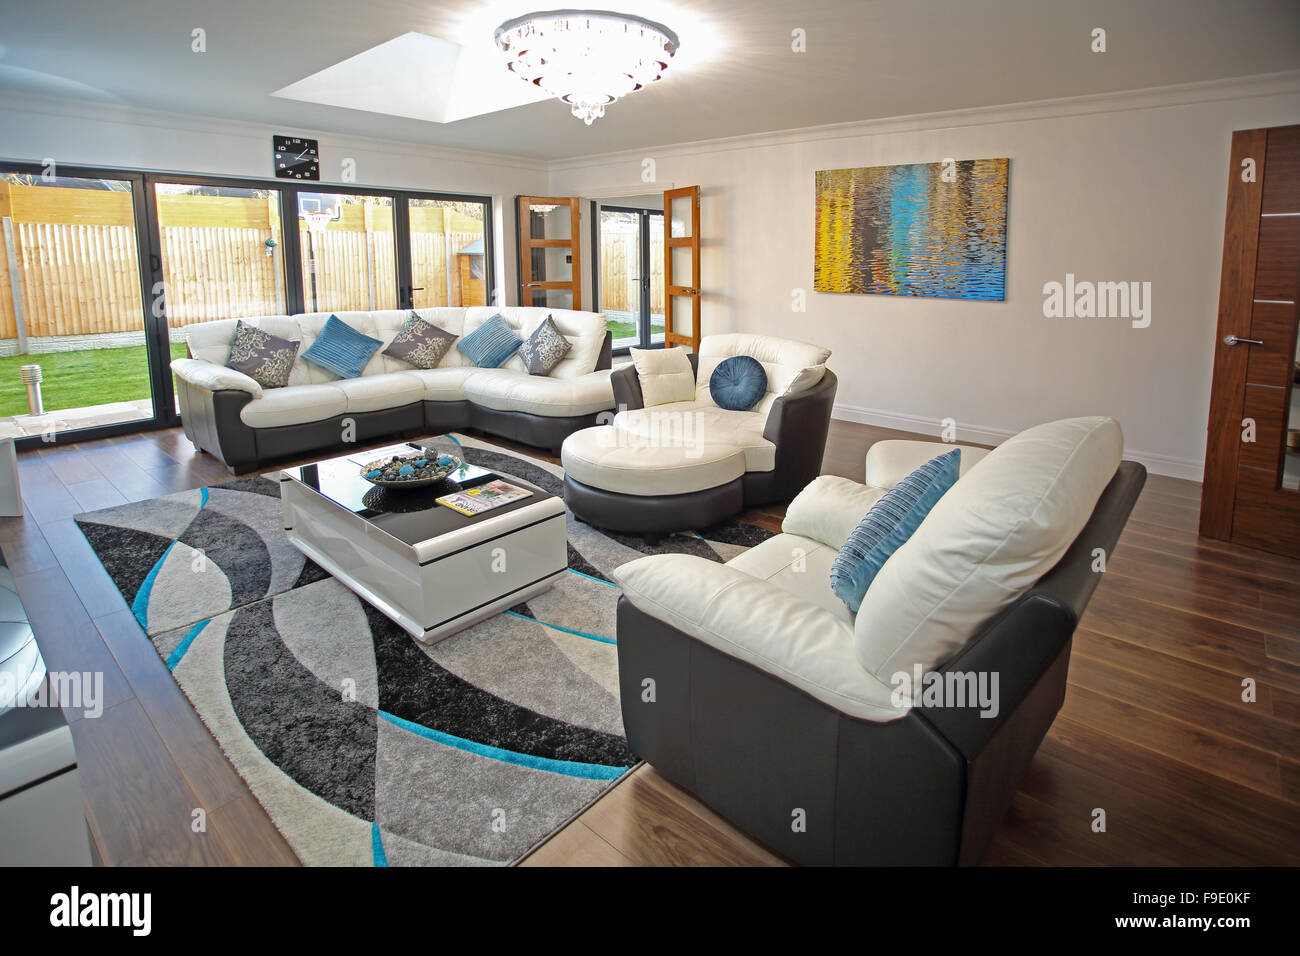 The living room of a newly refurbished house with two-tone leather sofas and bifold doors to the garden - Stock Image